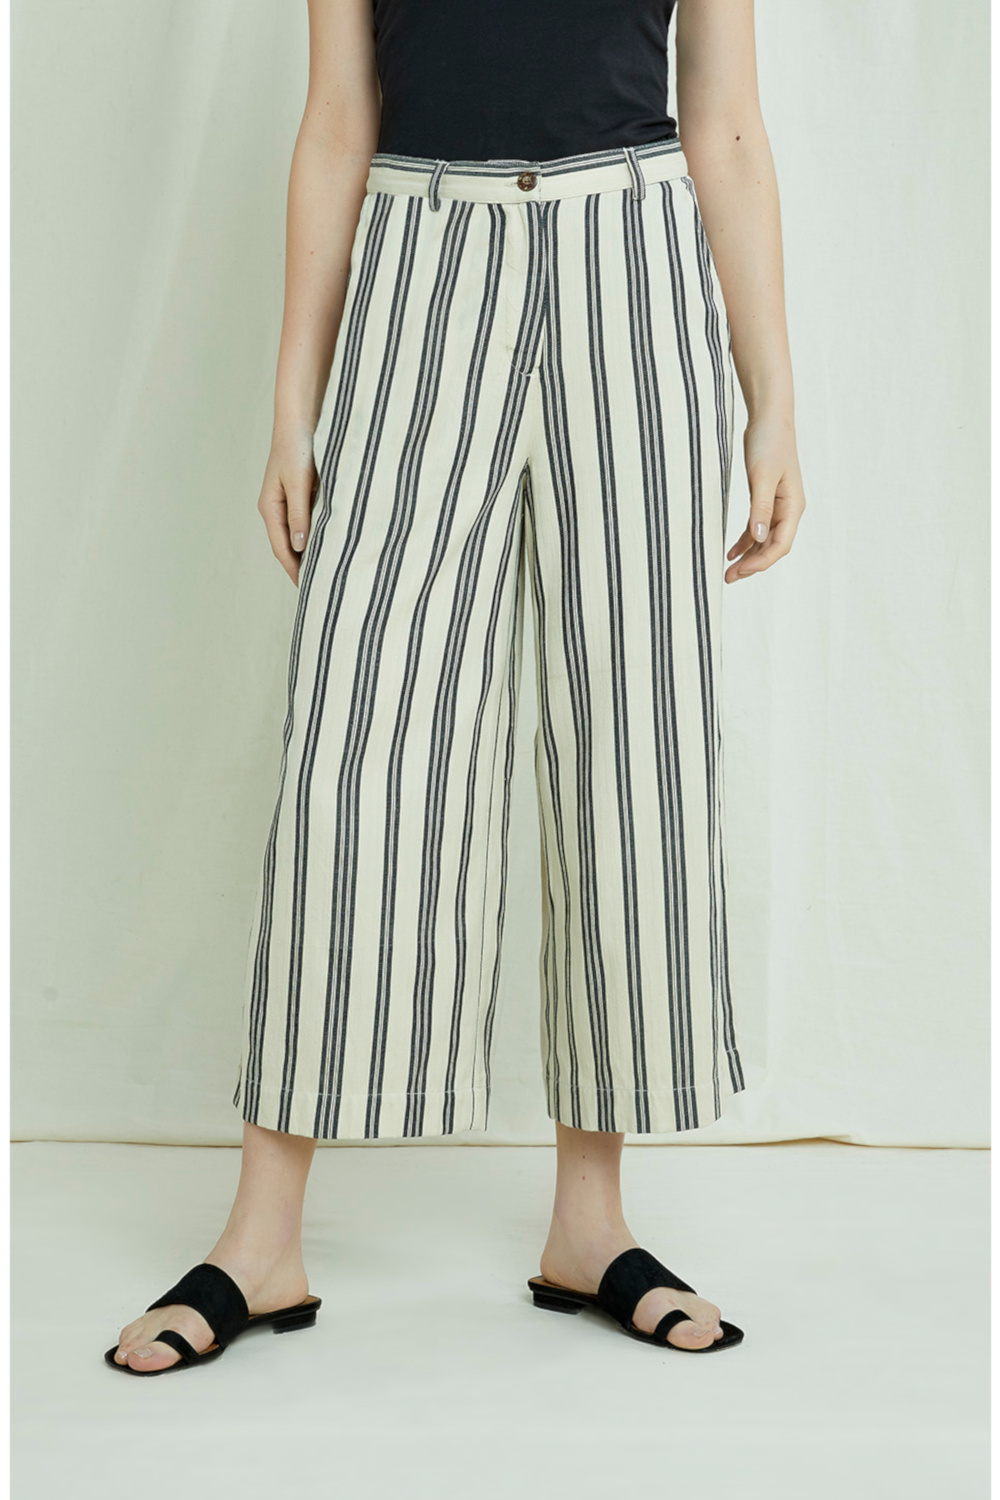 Peopletree Culotte Shauna Striped 2